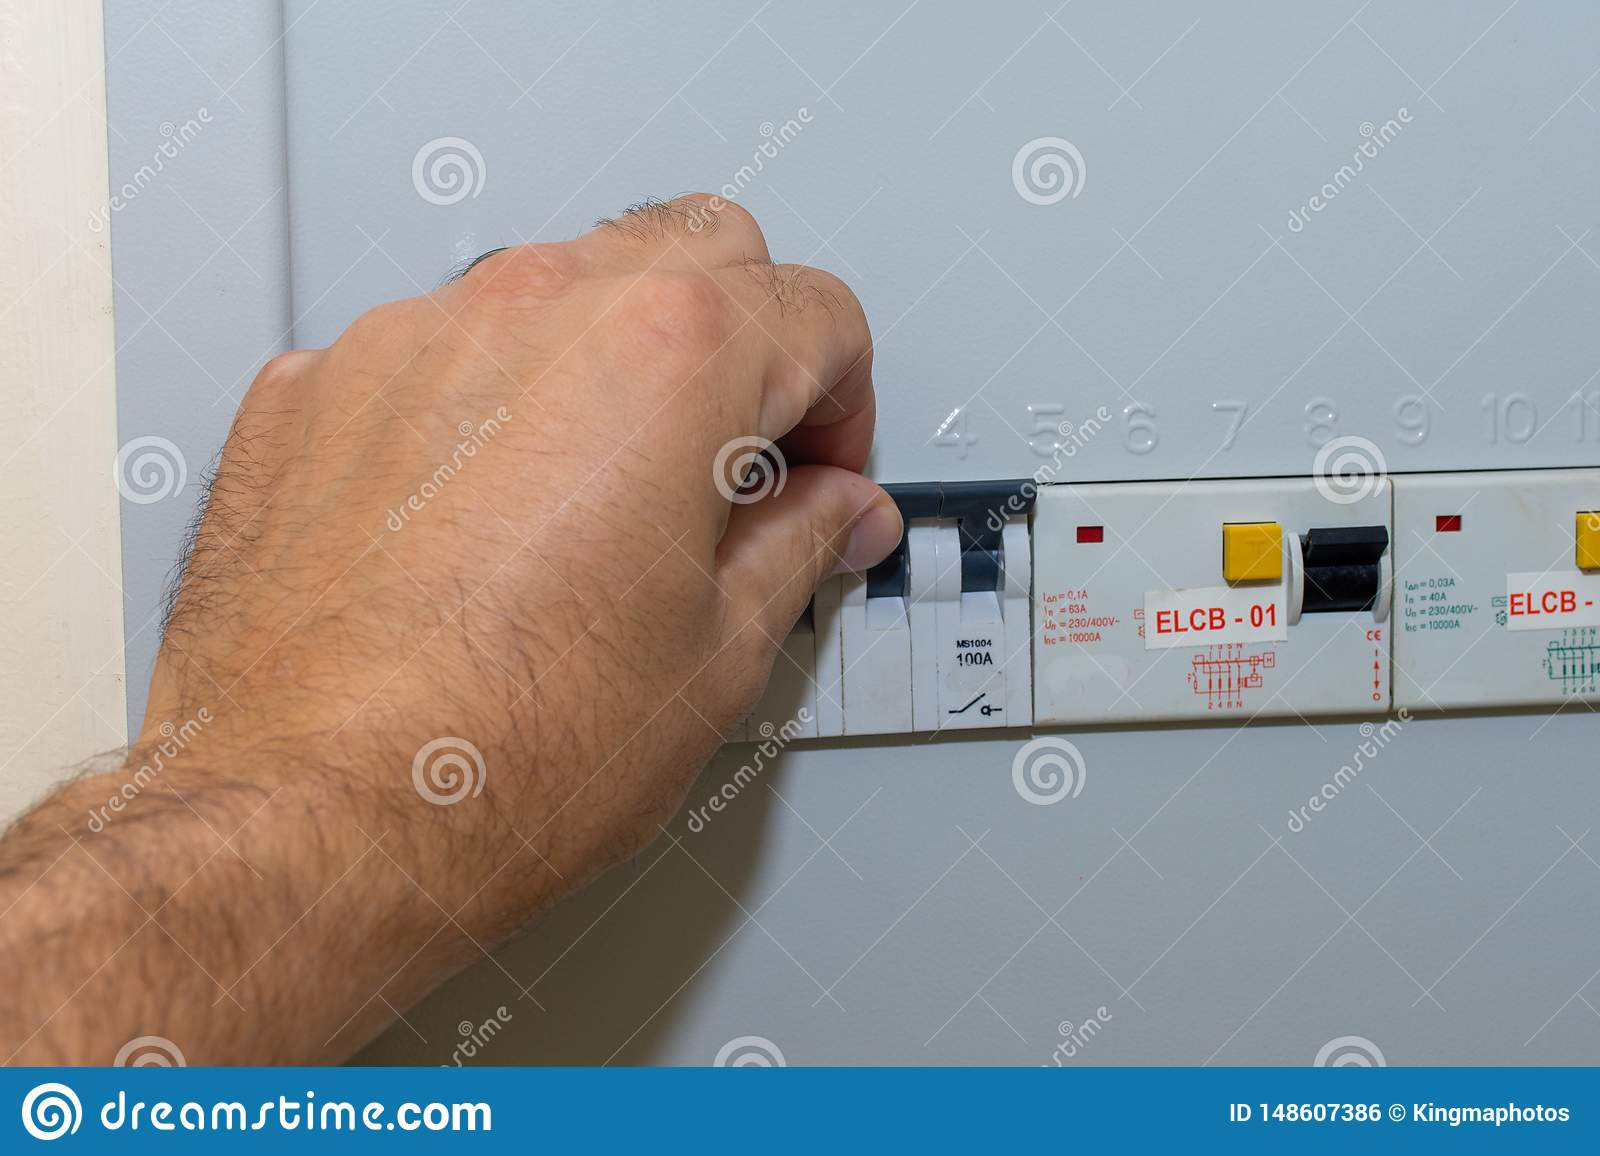 Hand pushes breaker in a fuse box in a residential house looking at the electrical breakers fixing loss of power